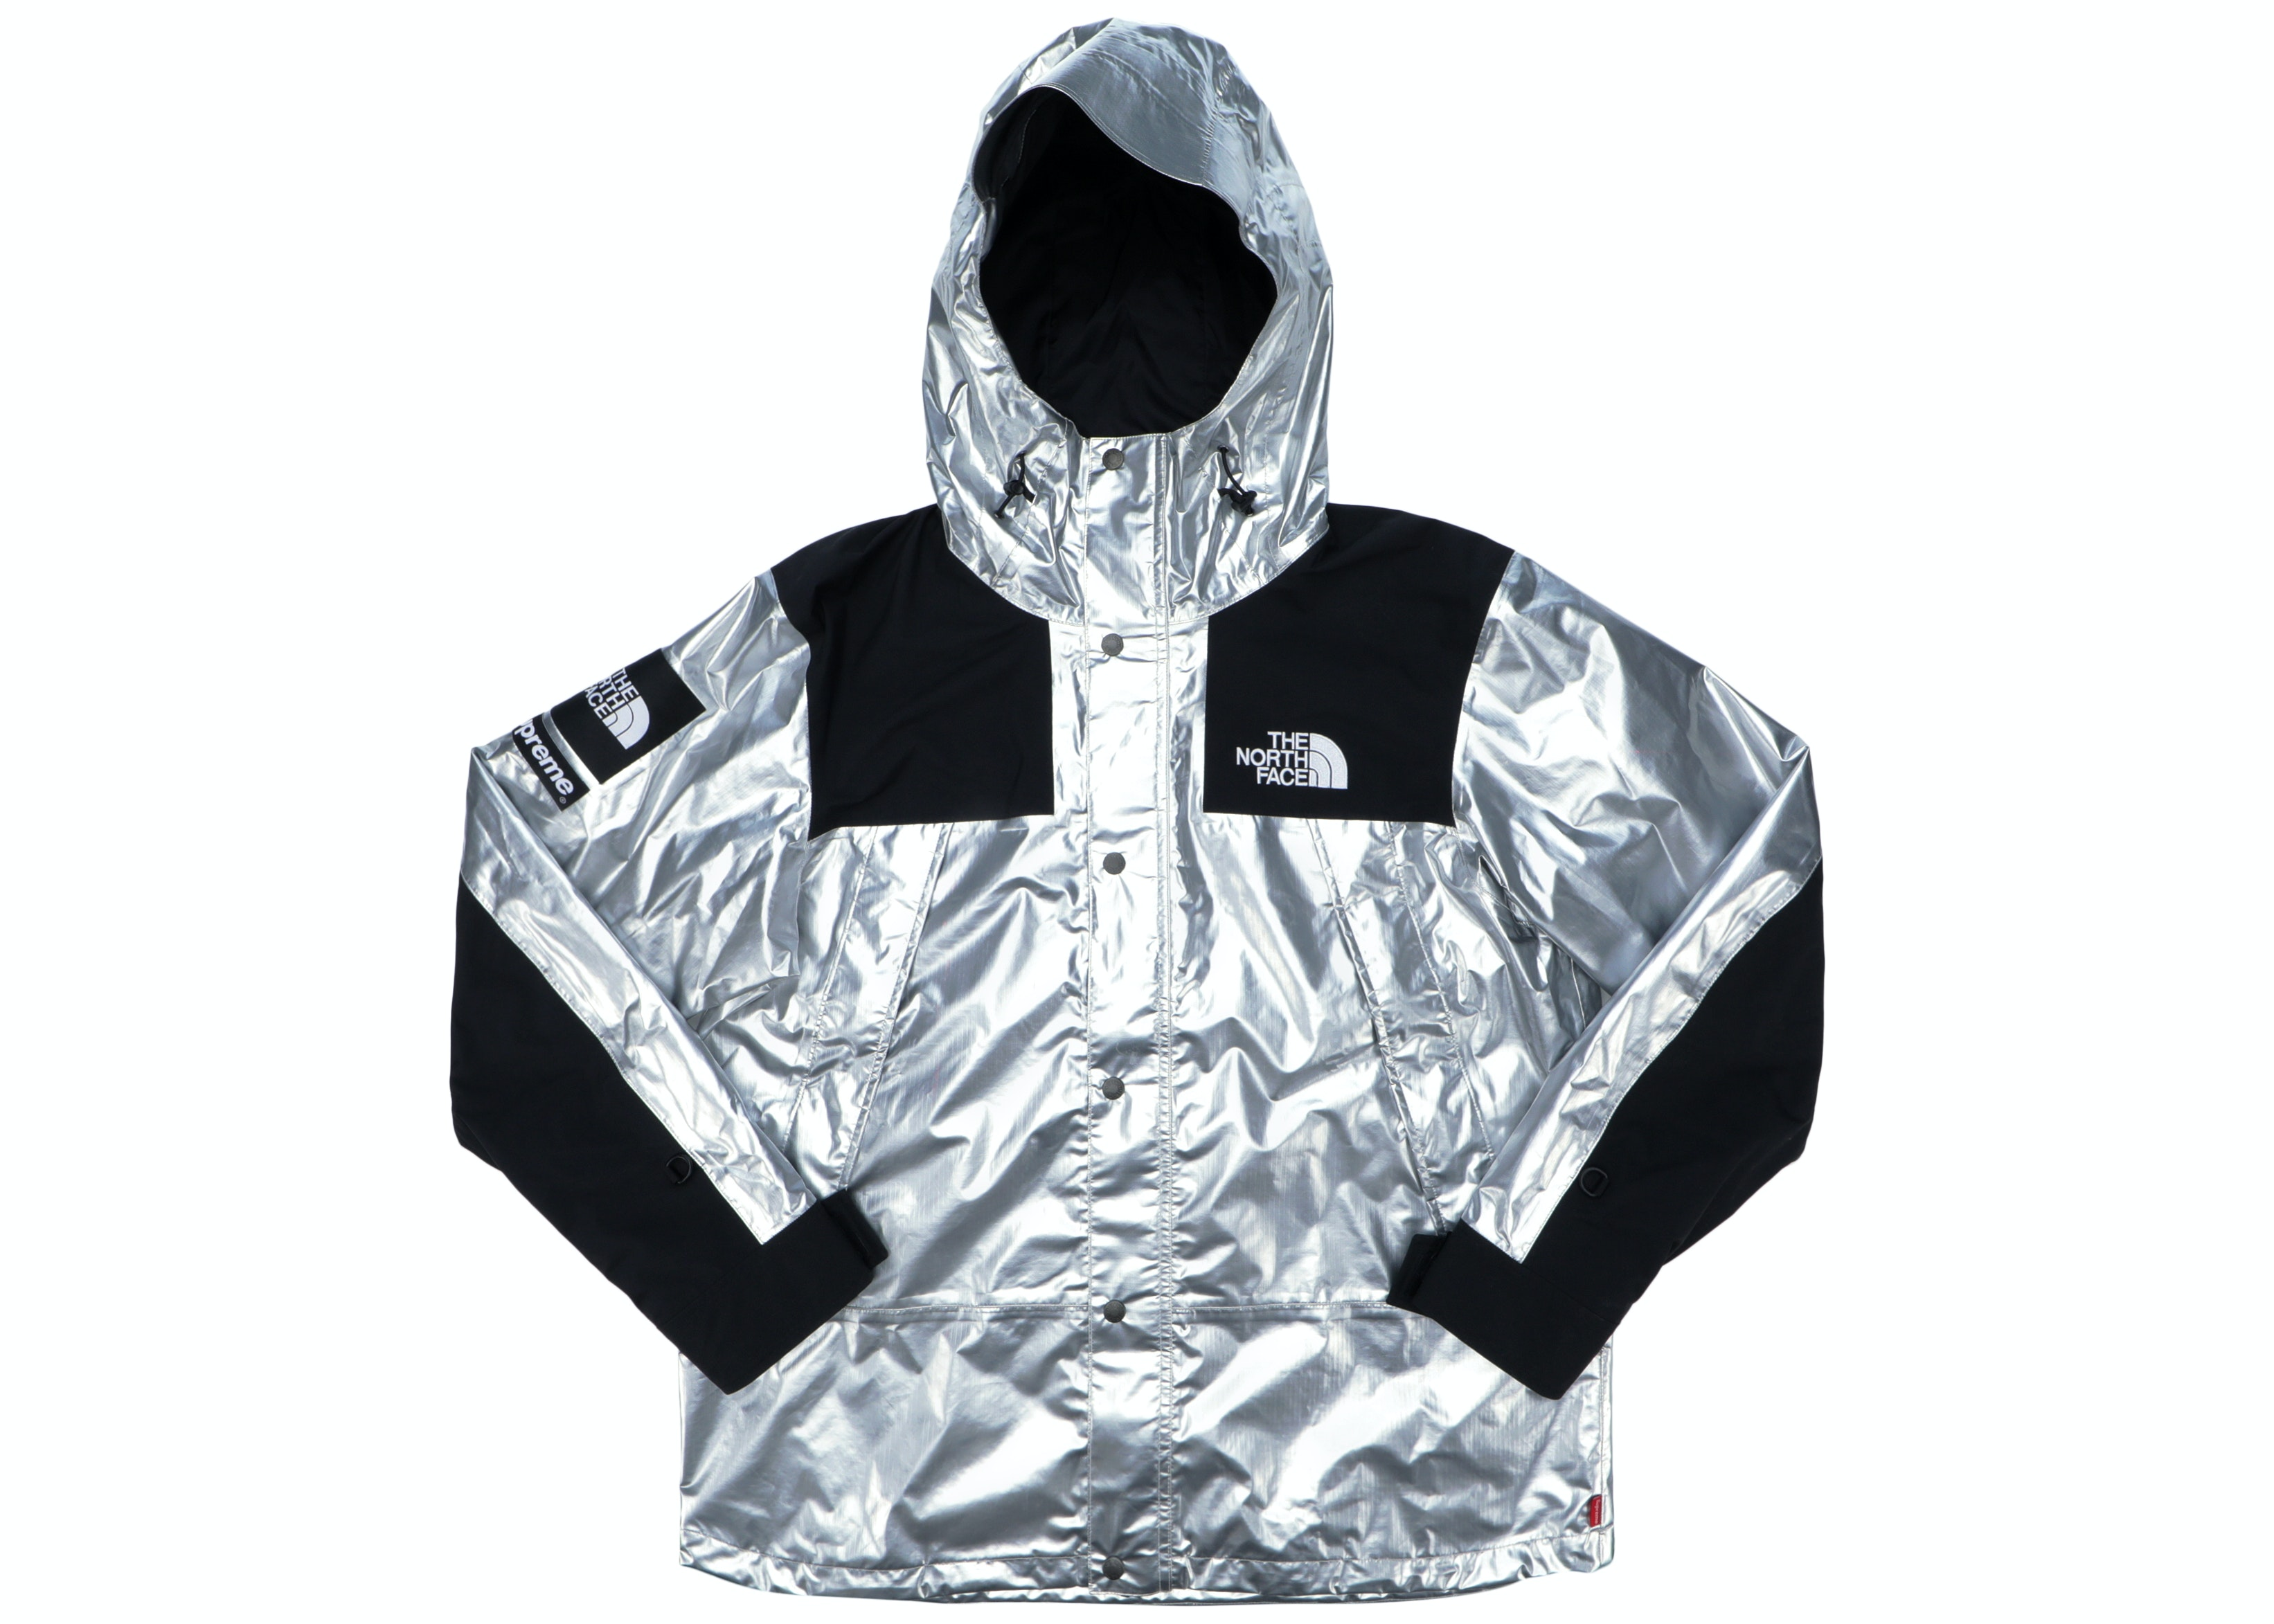 North Face Jackets